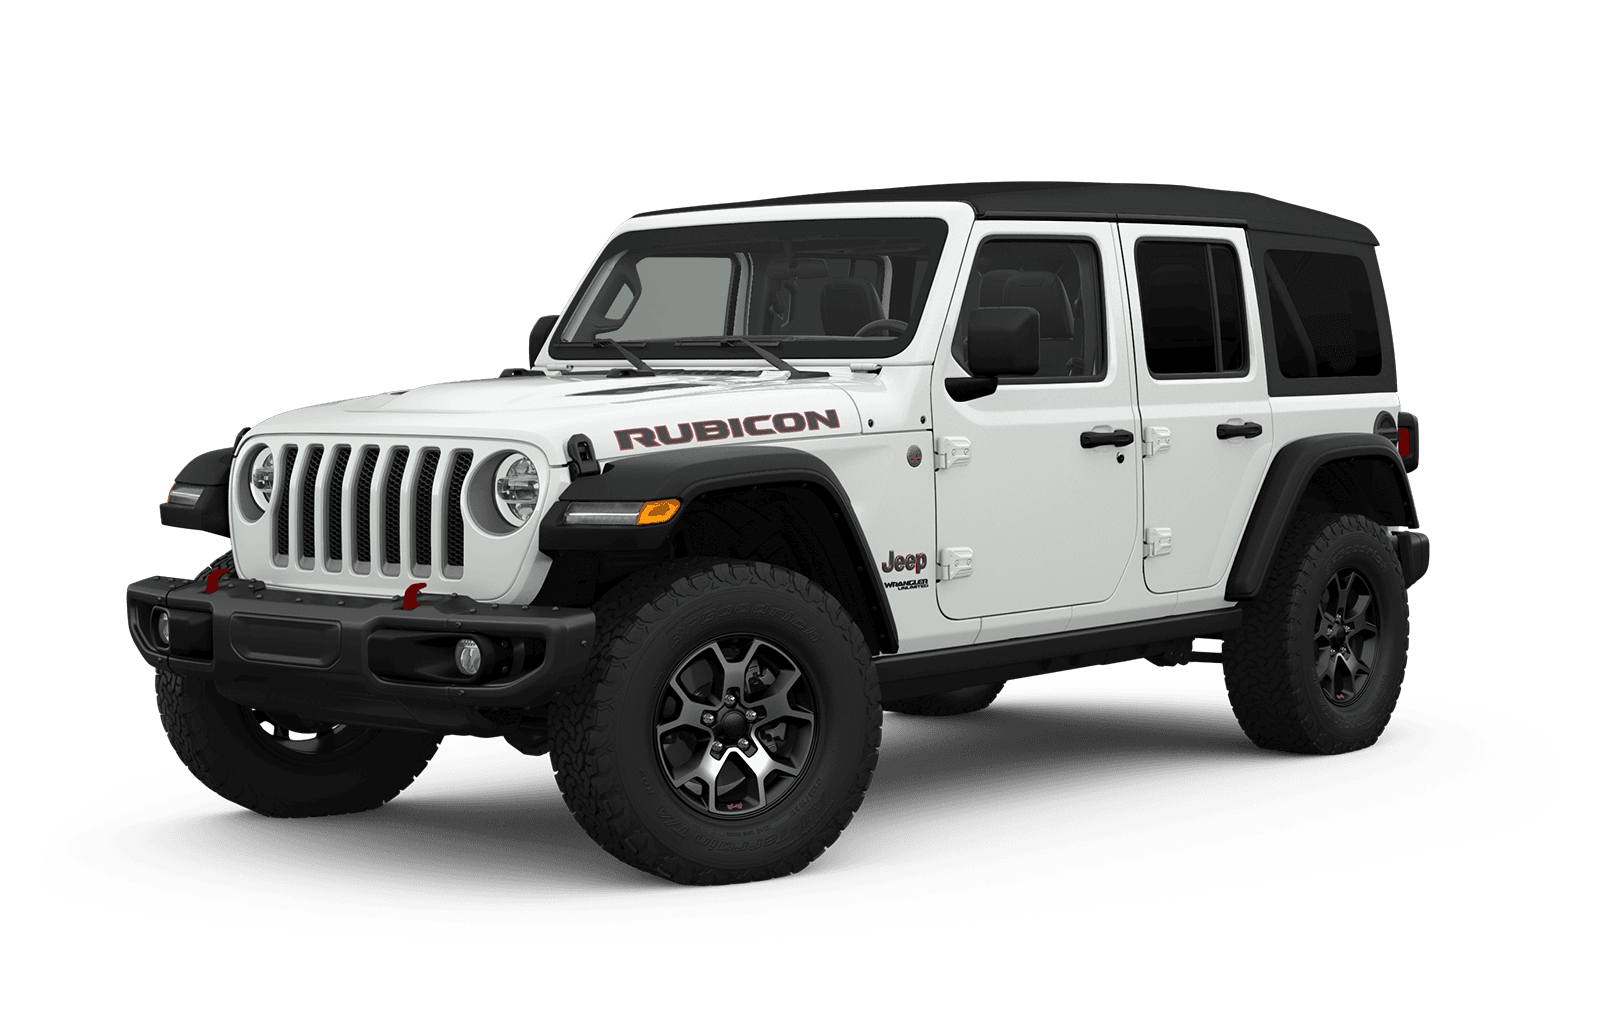 2019 Jeep Wrangler Full View in white with Wheels